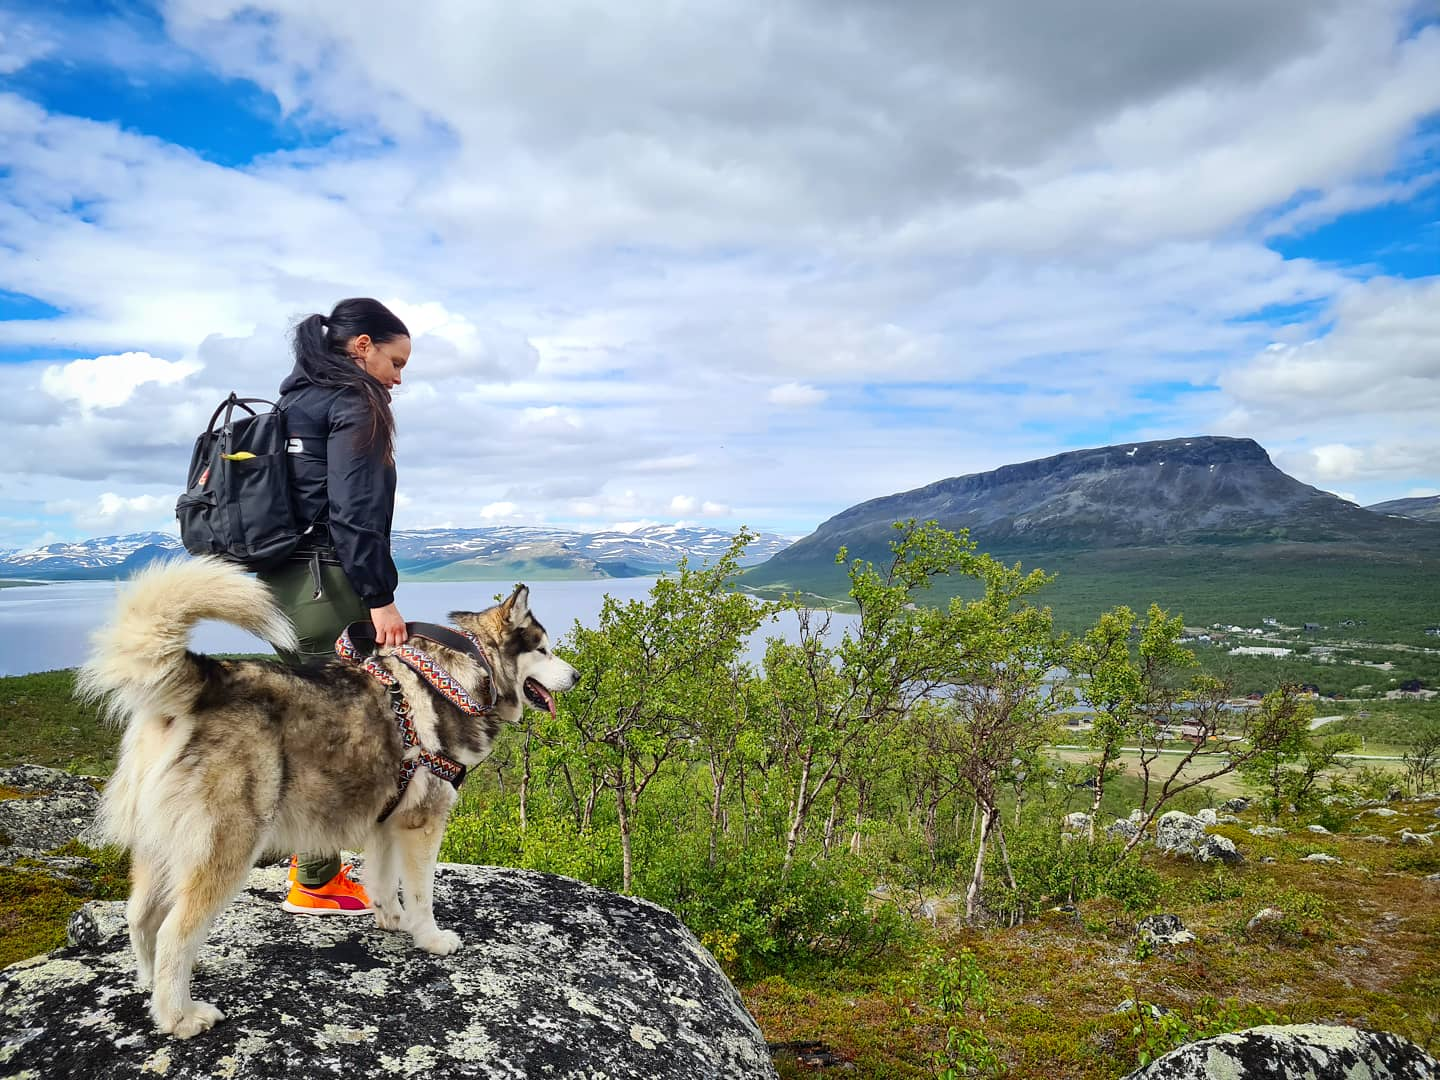 Summer hiking in Finnish Lapland- On the top of Salmivaara, Kilpisjärvi by Maiju Wallenius